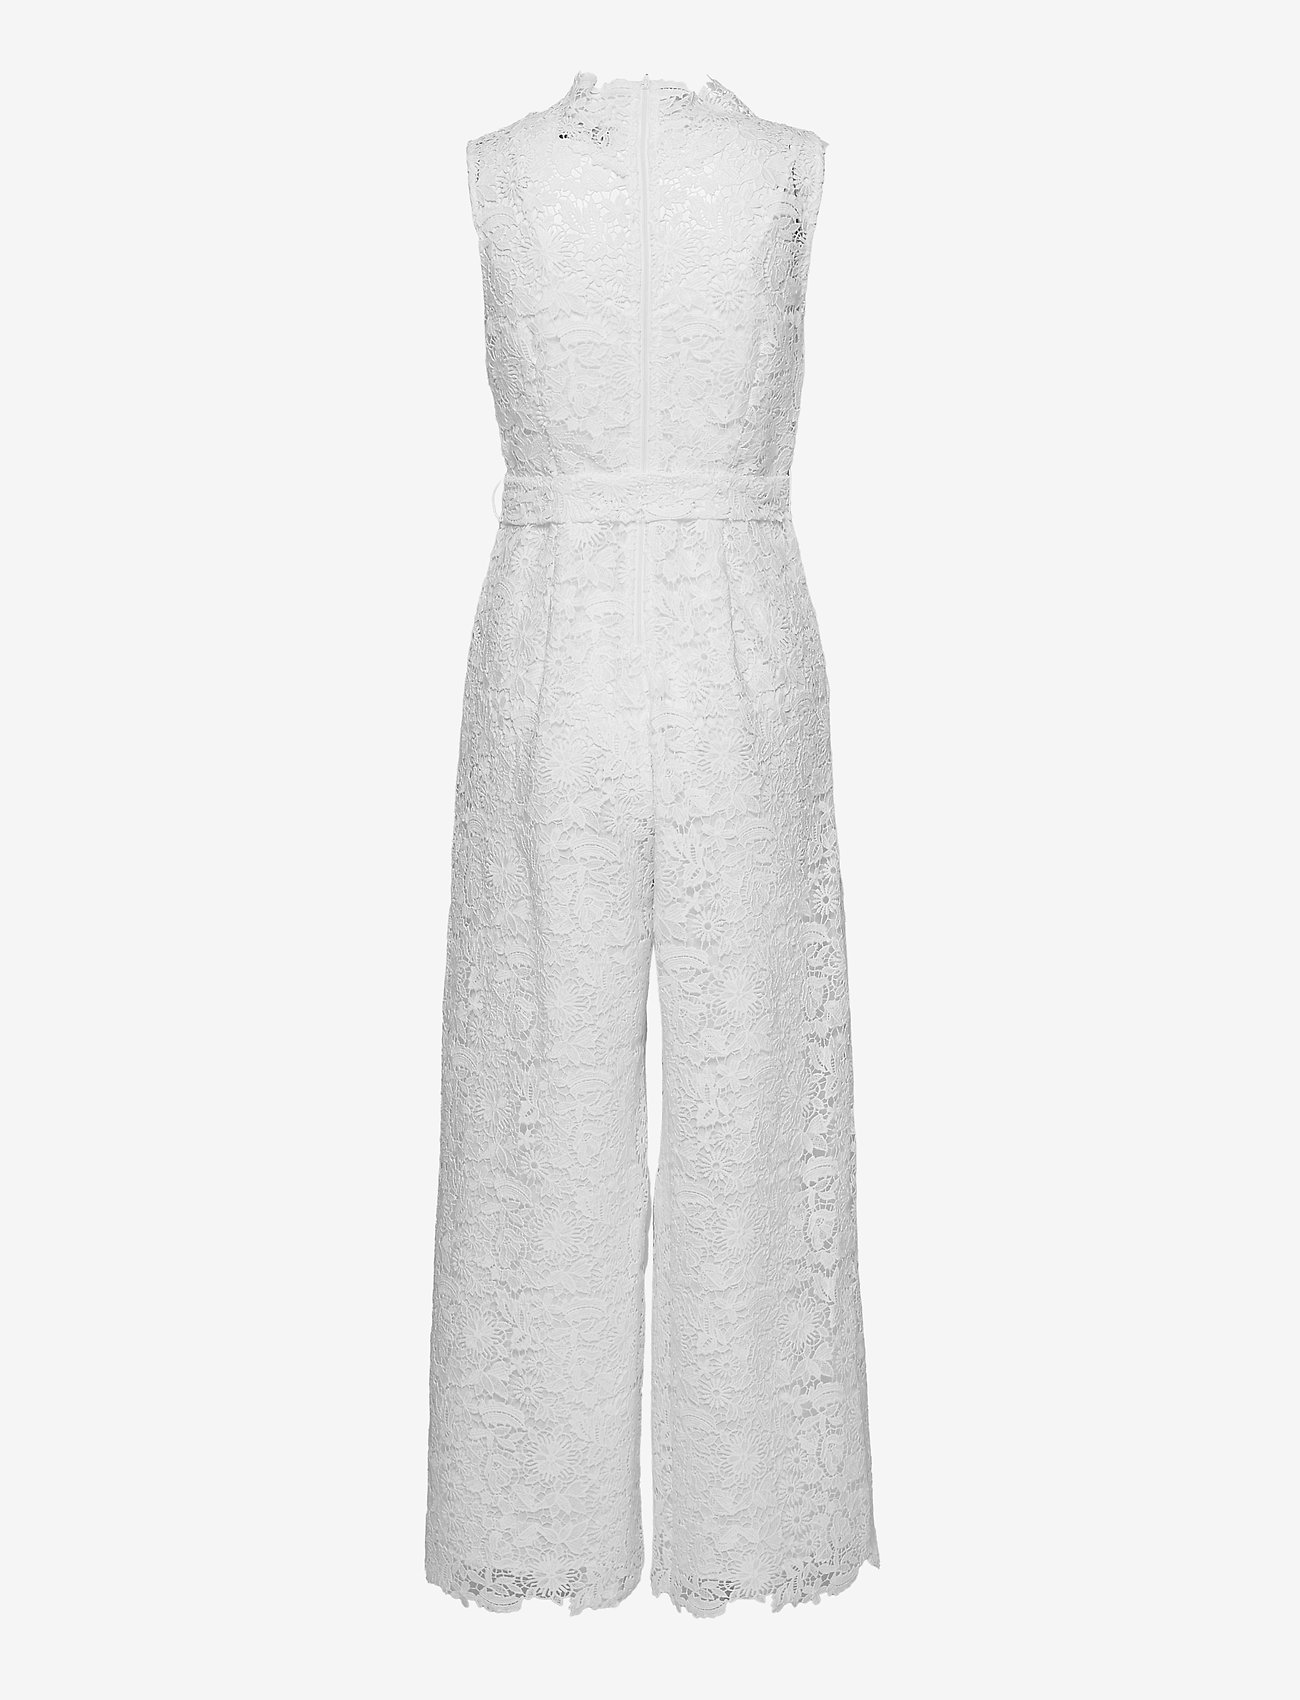 SAND - 3180 - Whitney 2 - jumpsuits - off white - 1